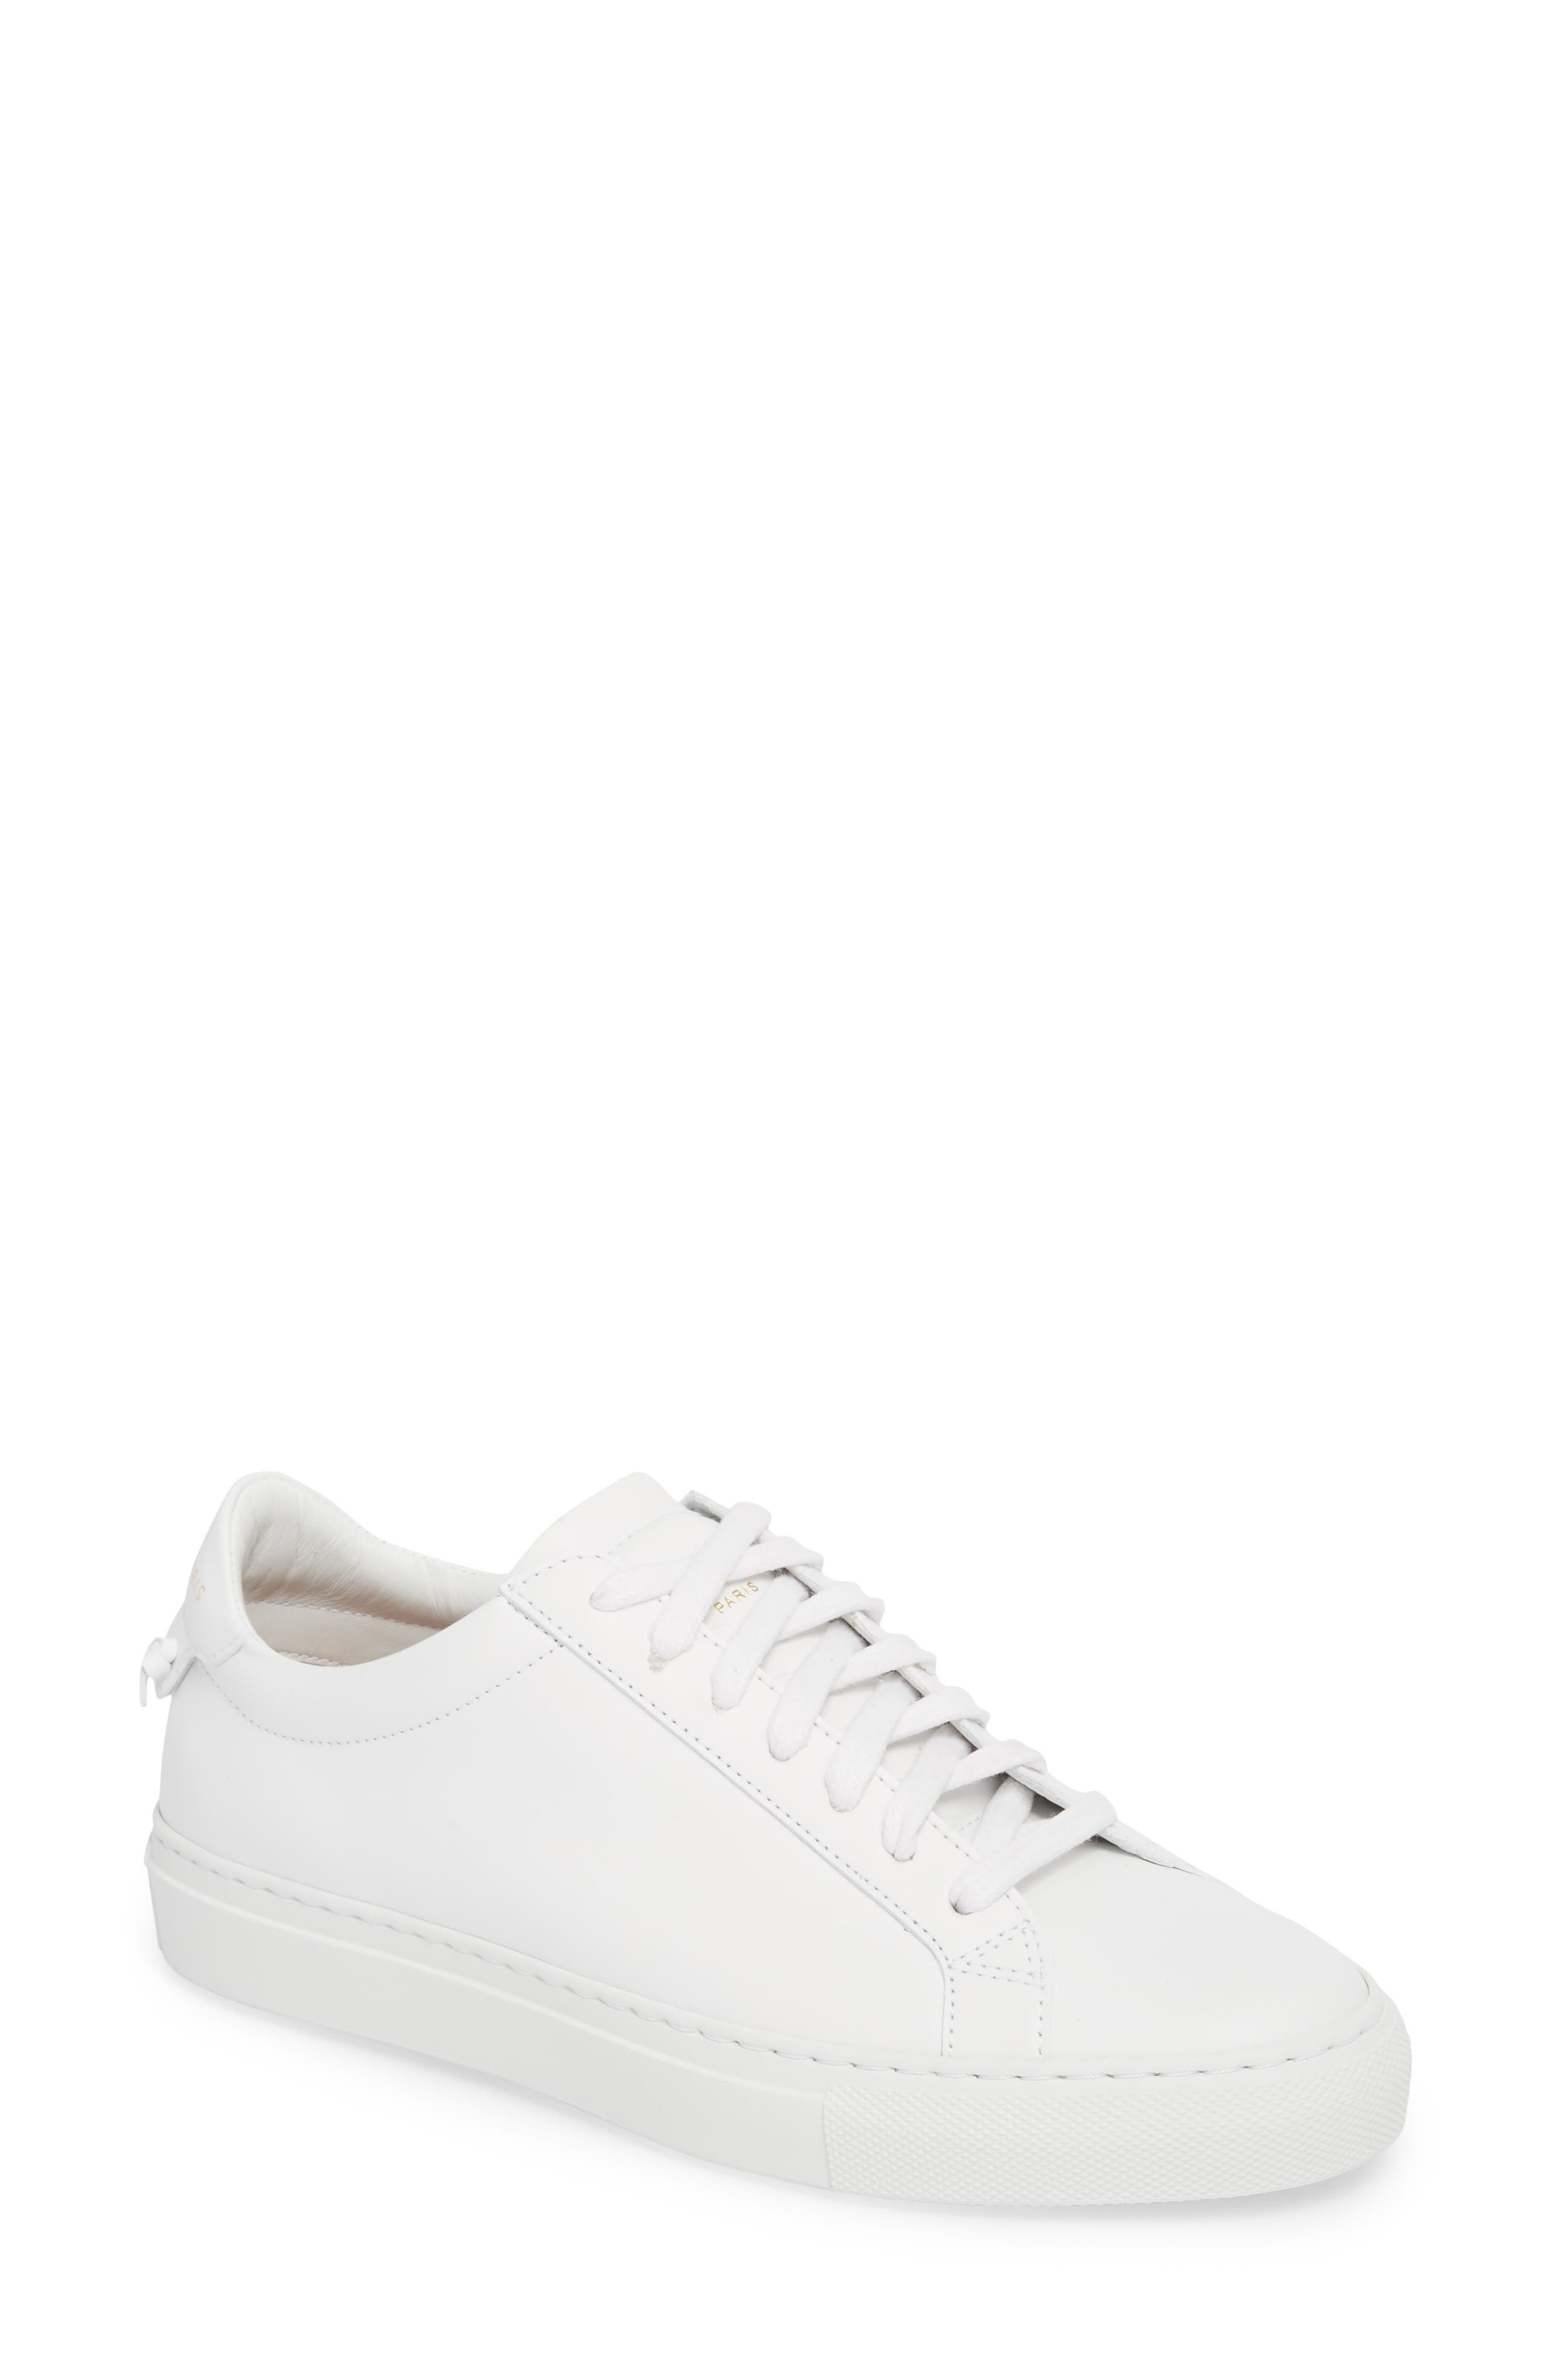 Main Image - Givenchy Low Top Sneaker (Women)